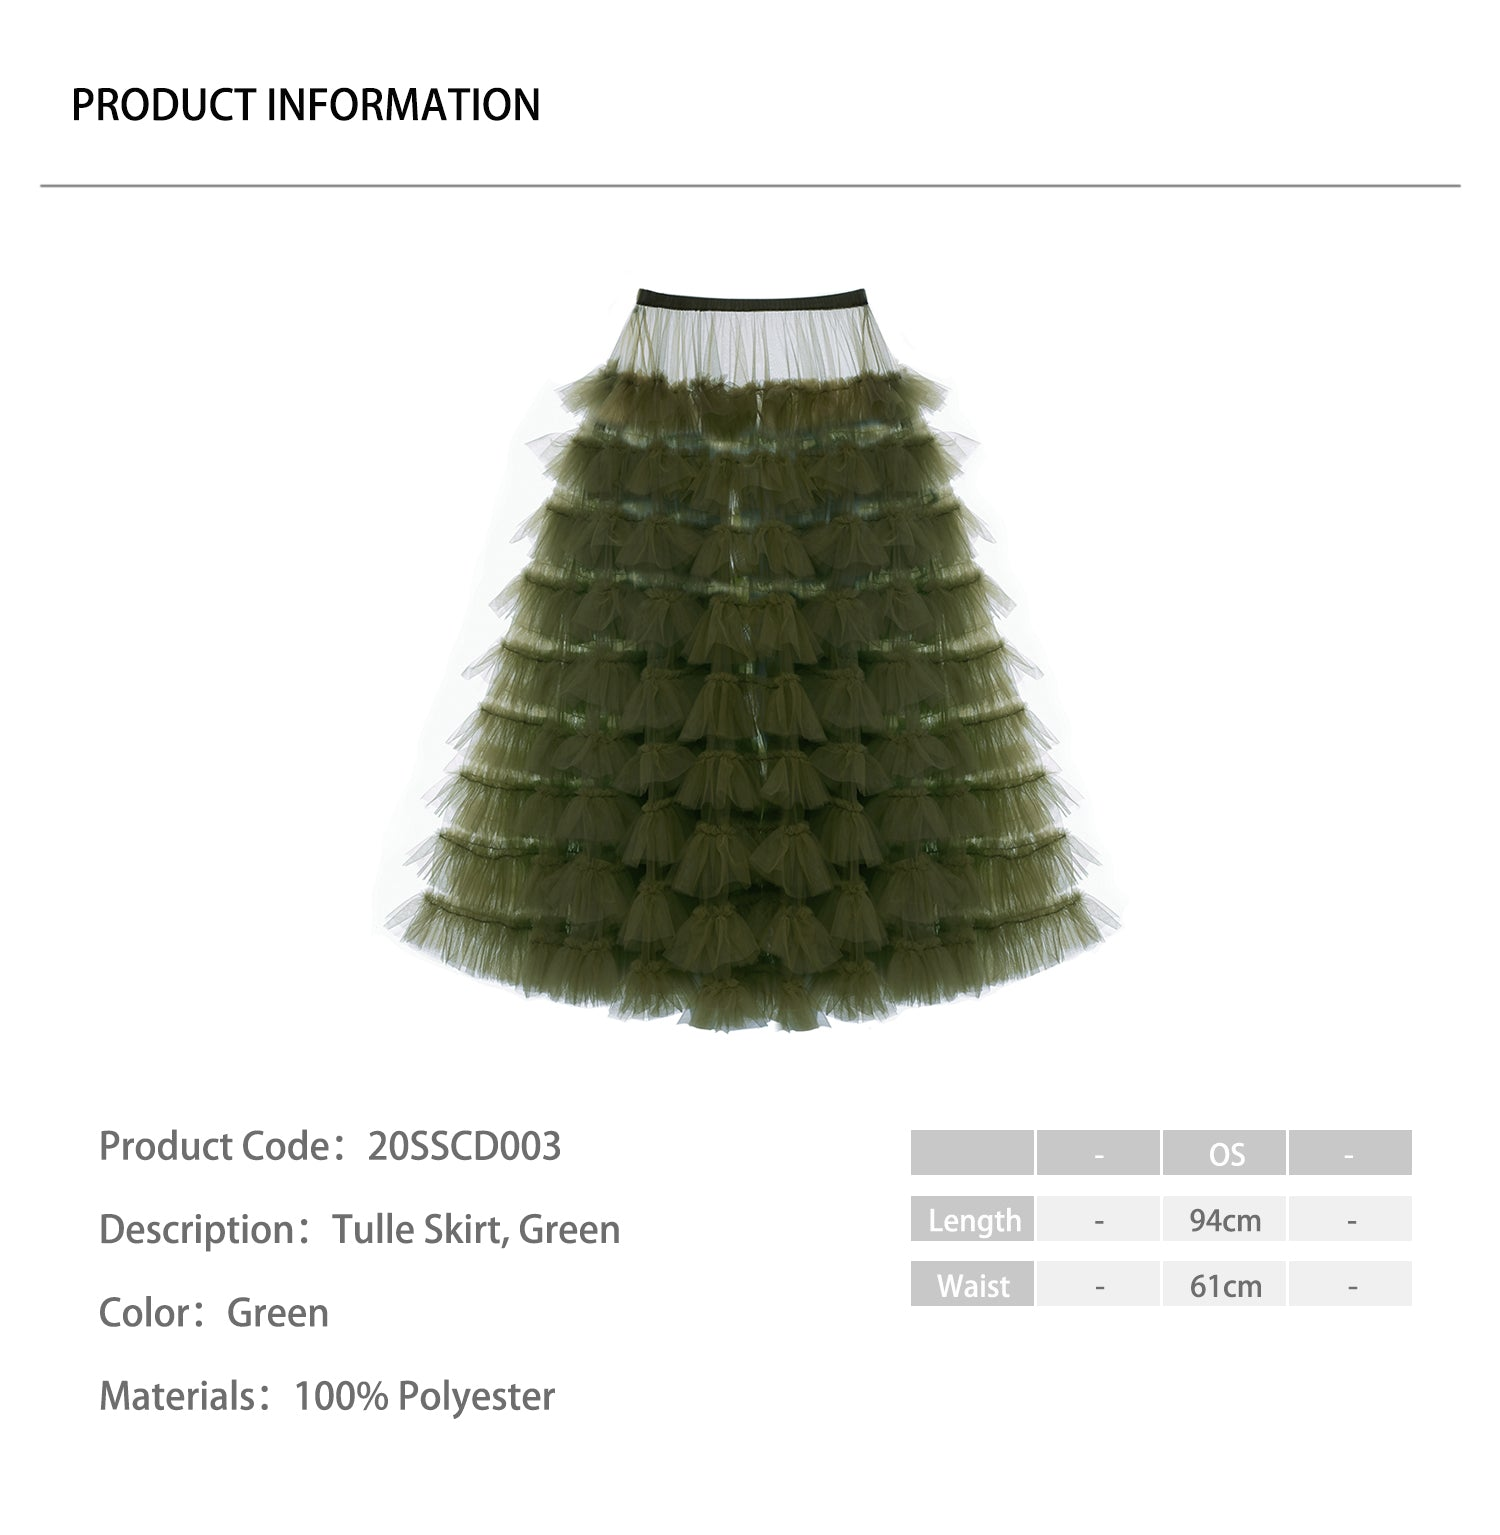 Tulle Skirt, Green